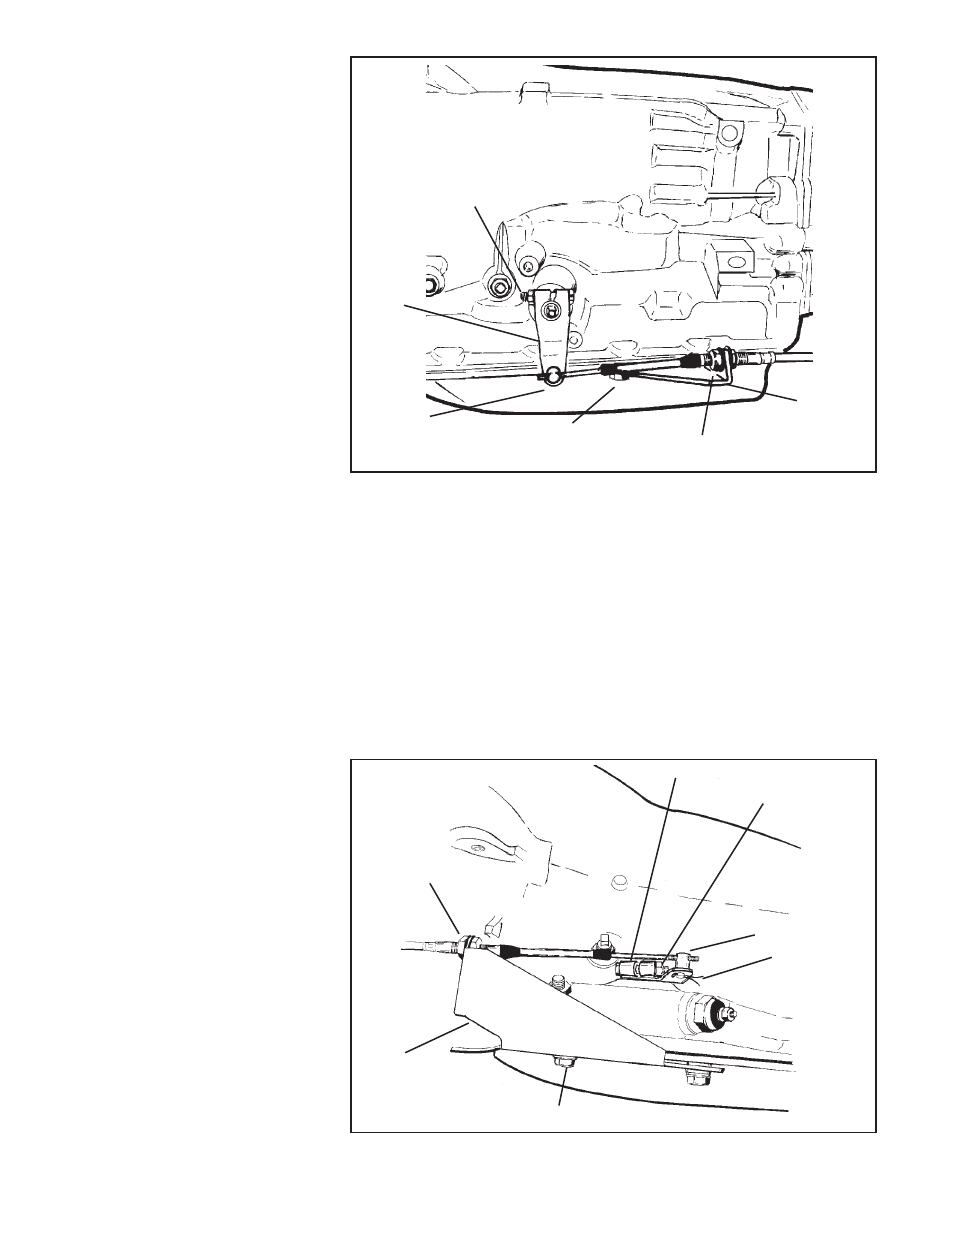 b&m 80775 unimatic shifter user manual | page 5 / 7